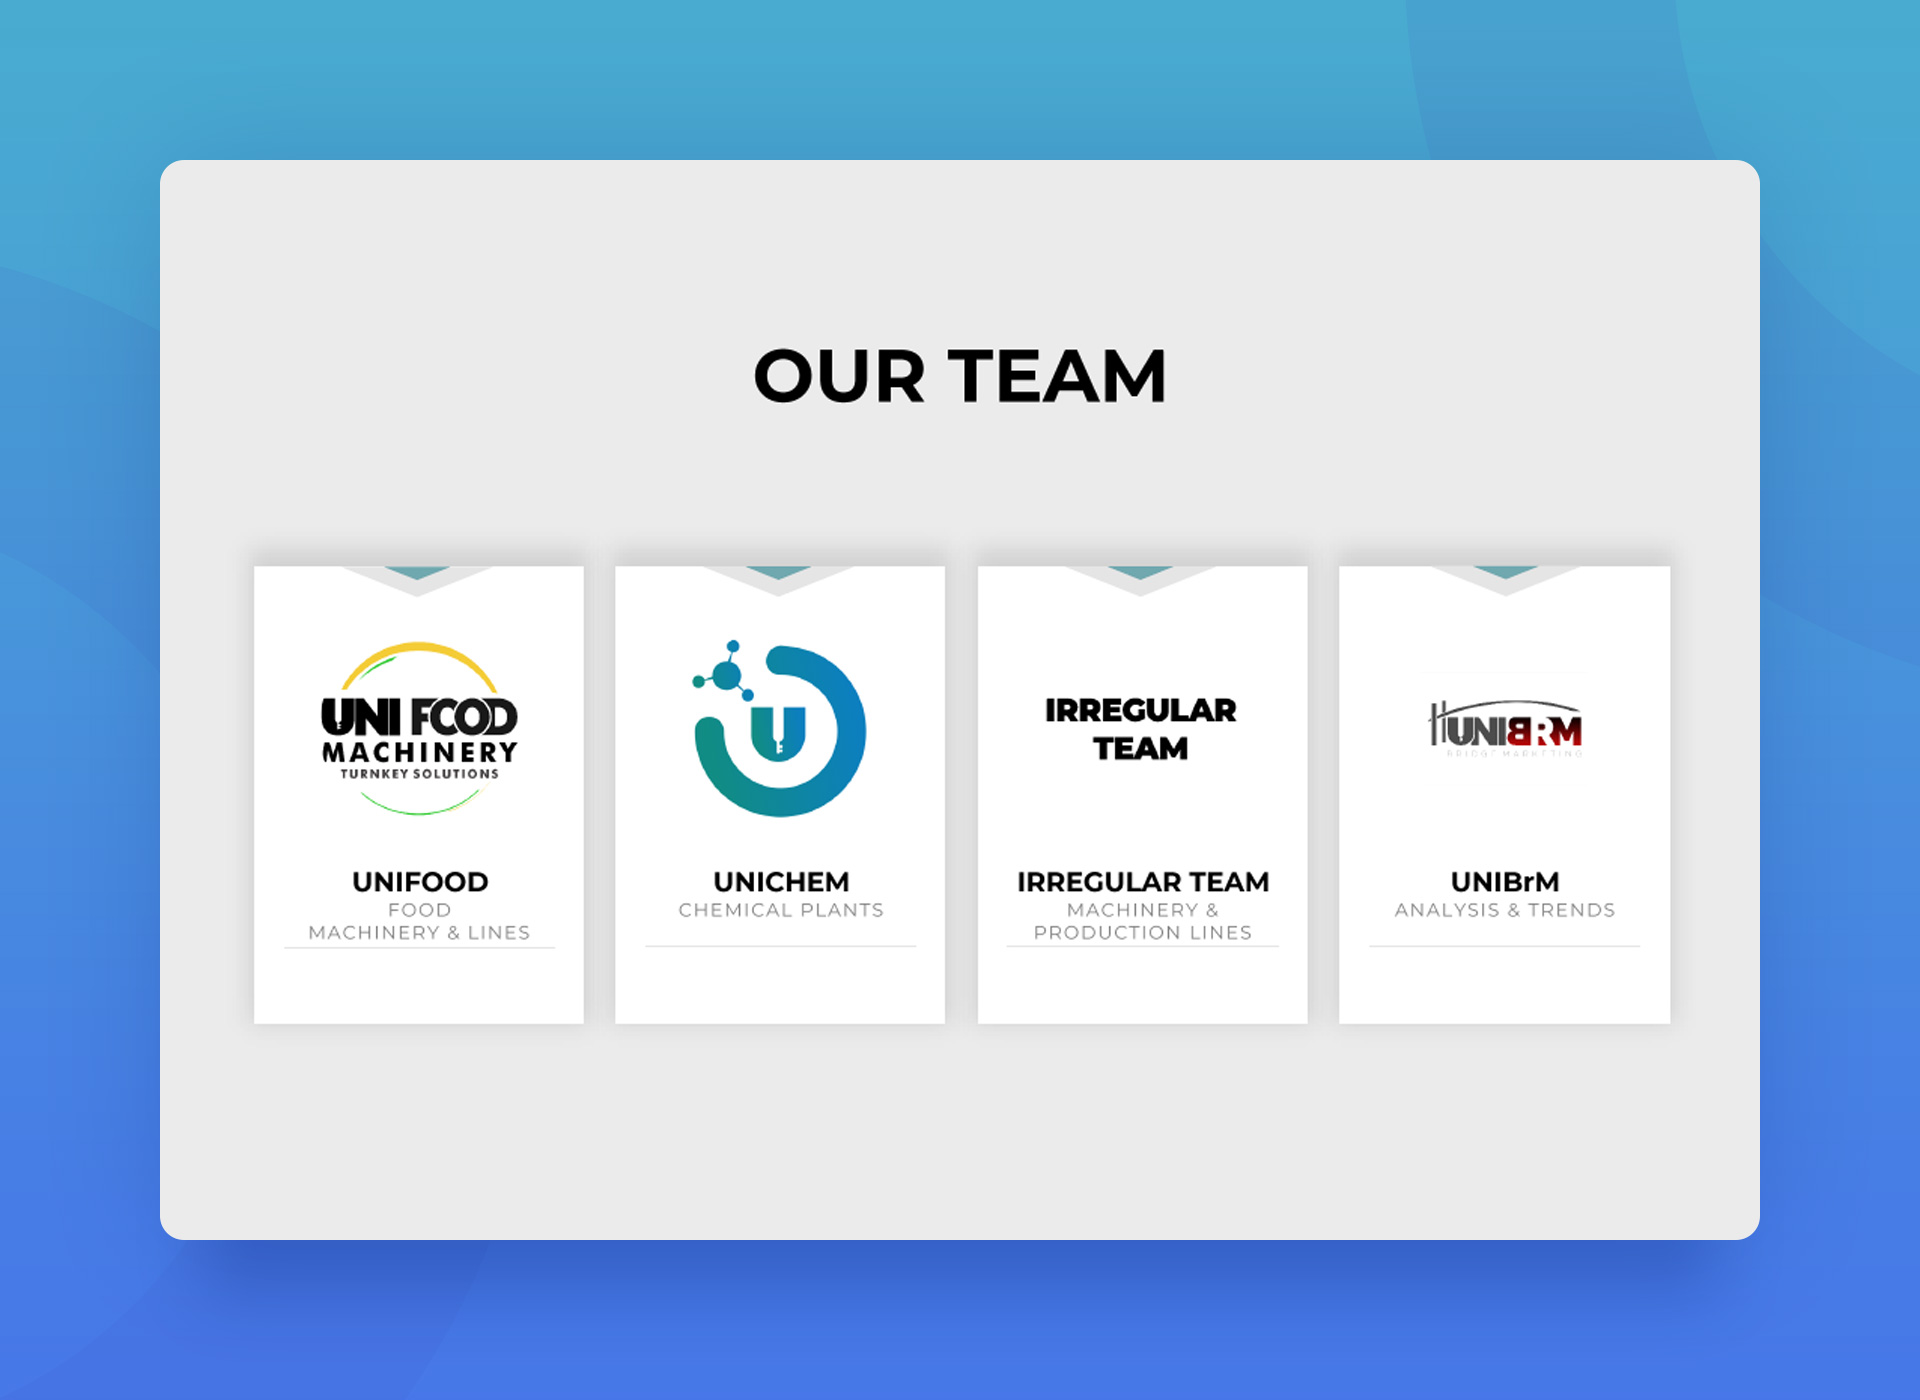 Our Team Presentation Page